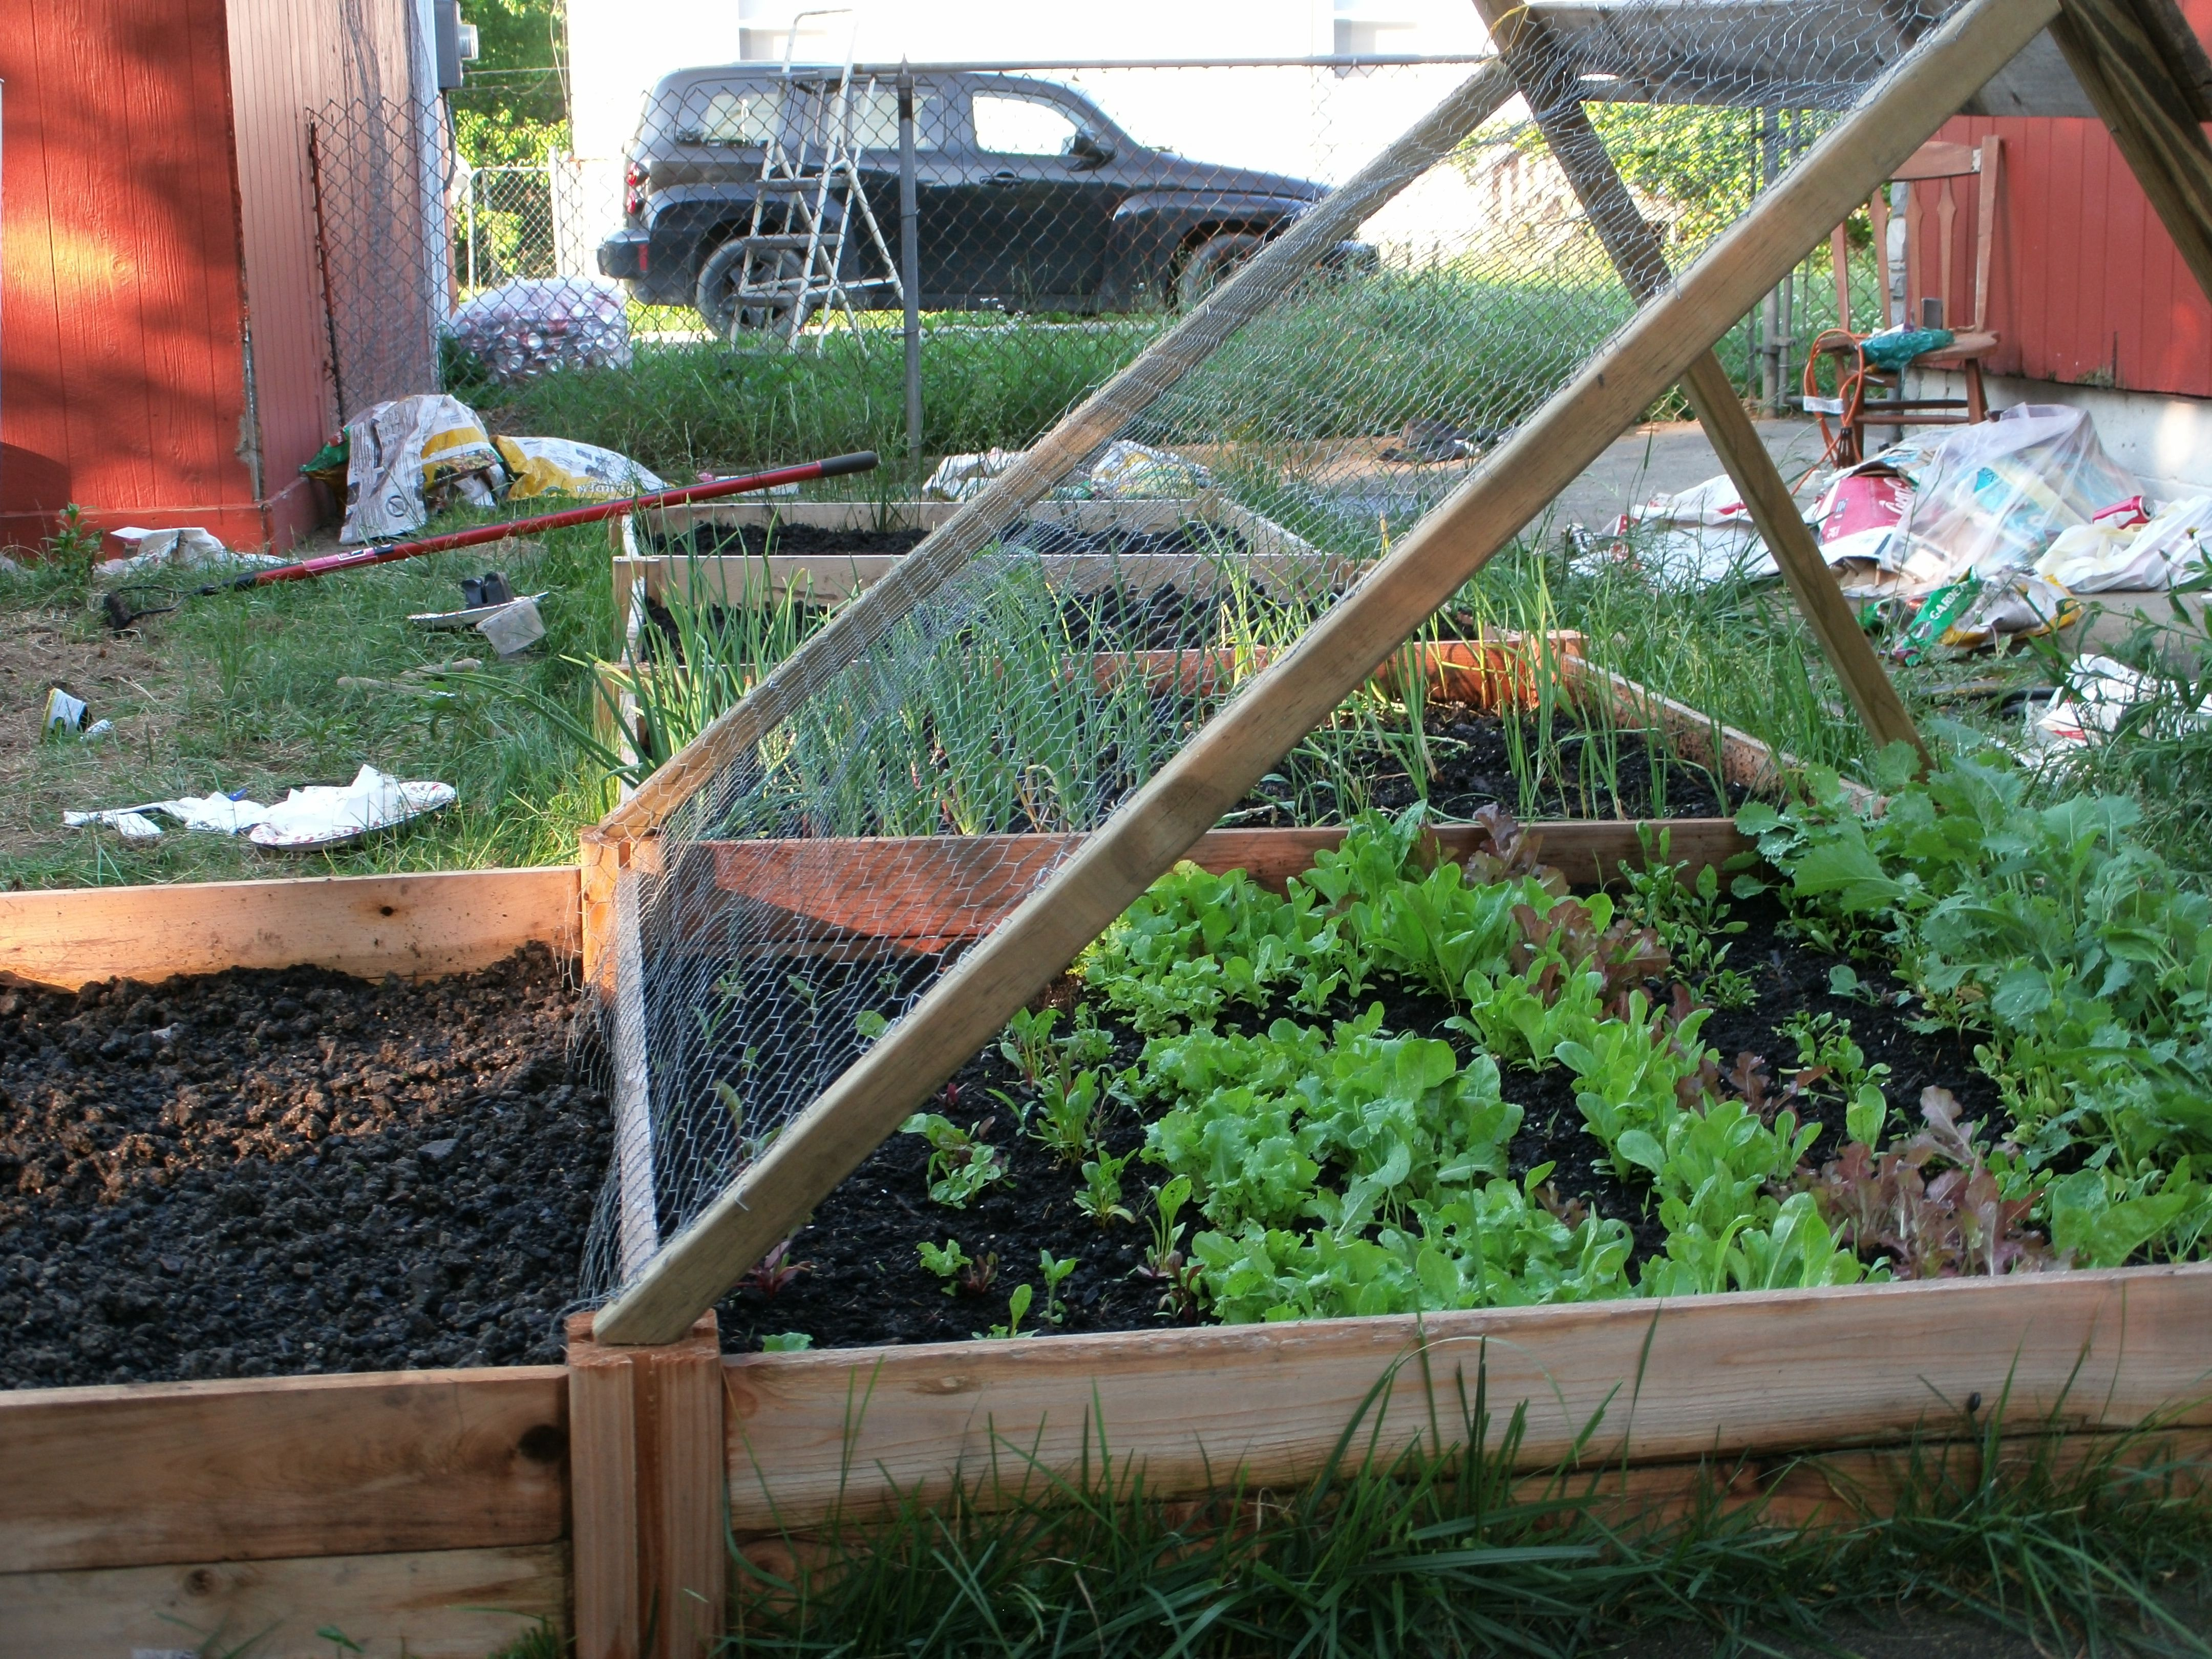 My version of the cucumber shade trellis for lettuce... got the idea on pinterest!